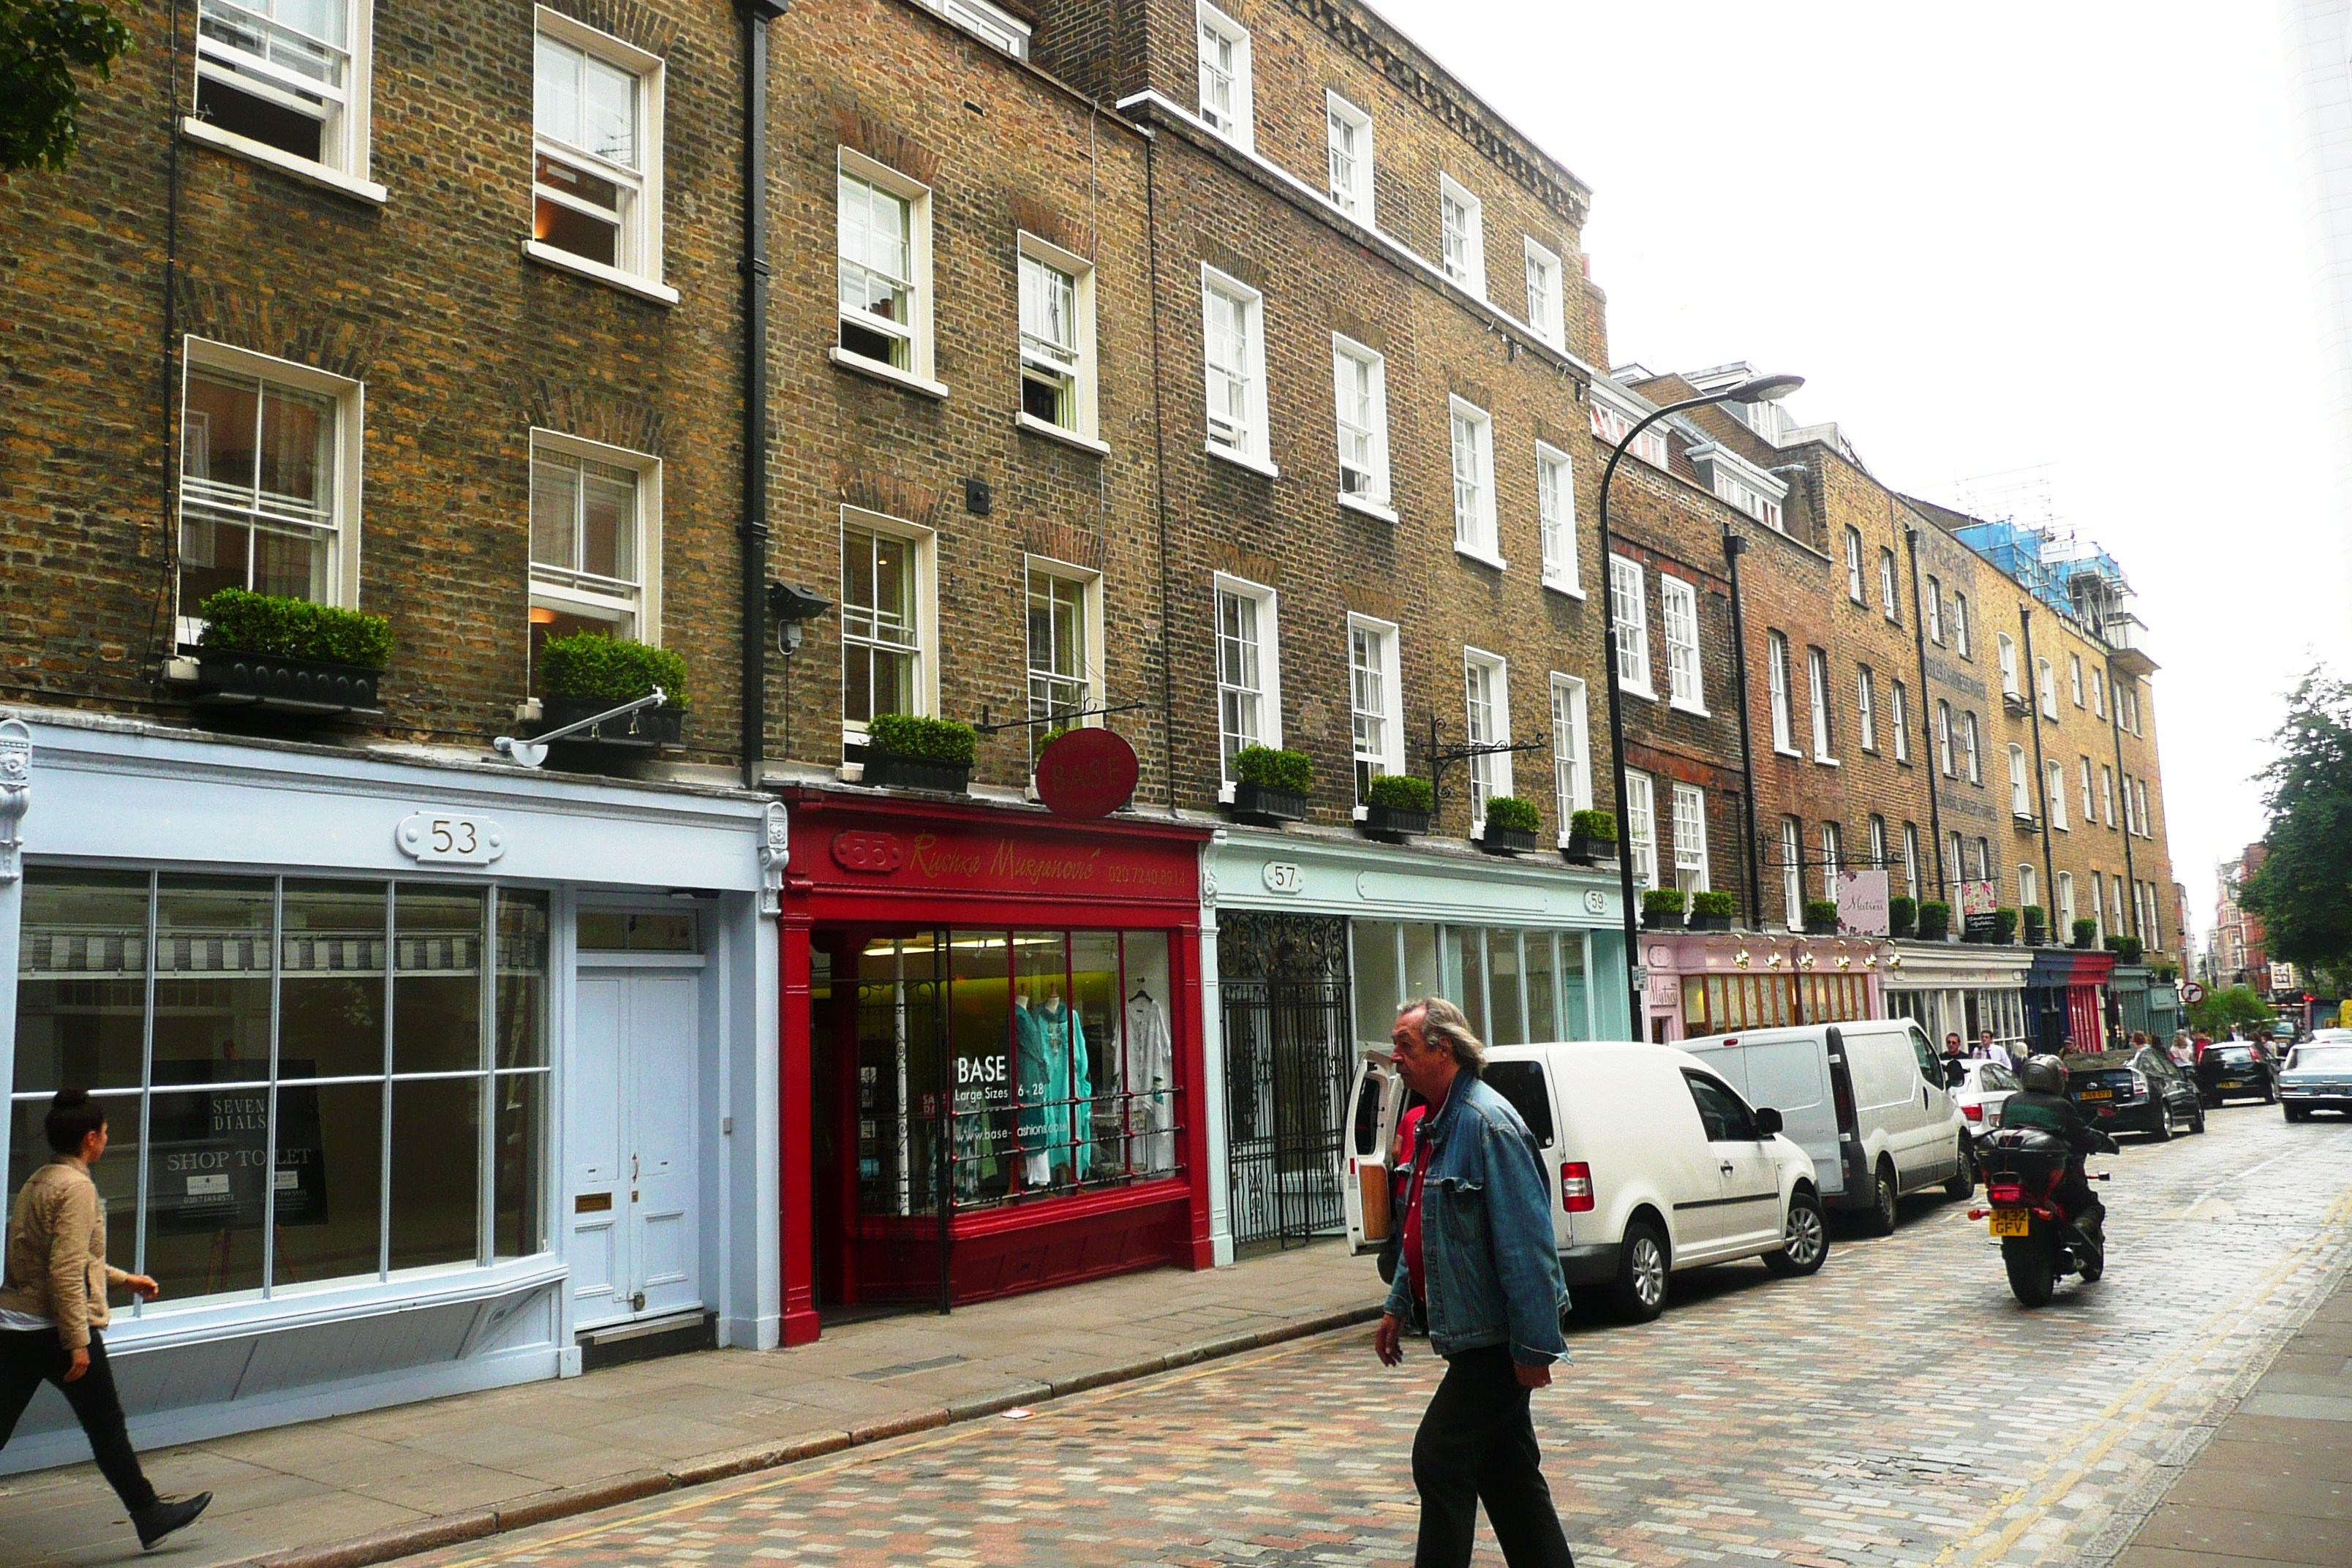 Monmouth Street entablature planters with restrained planting.